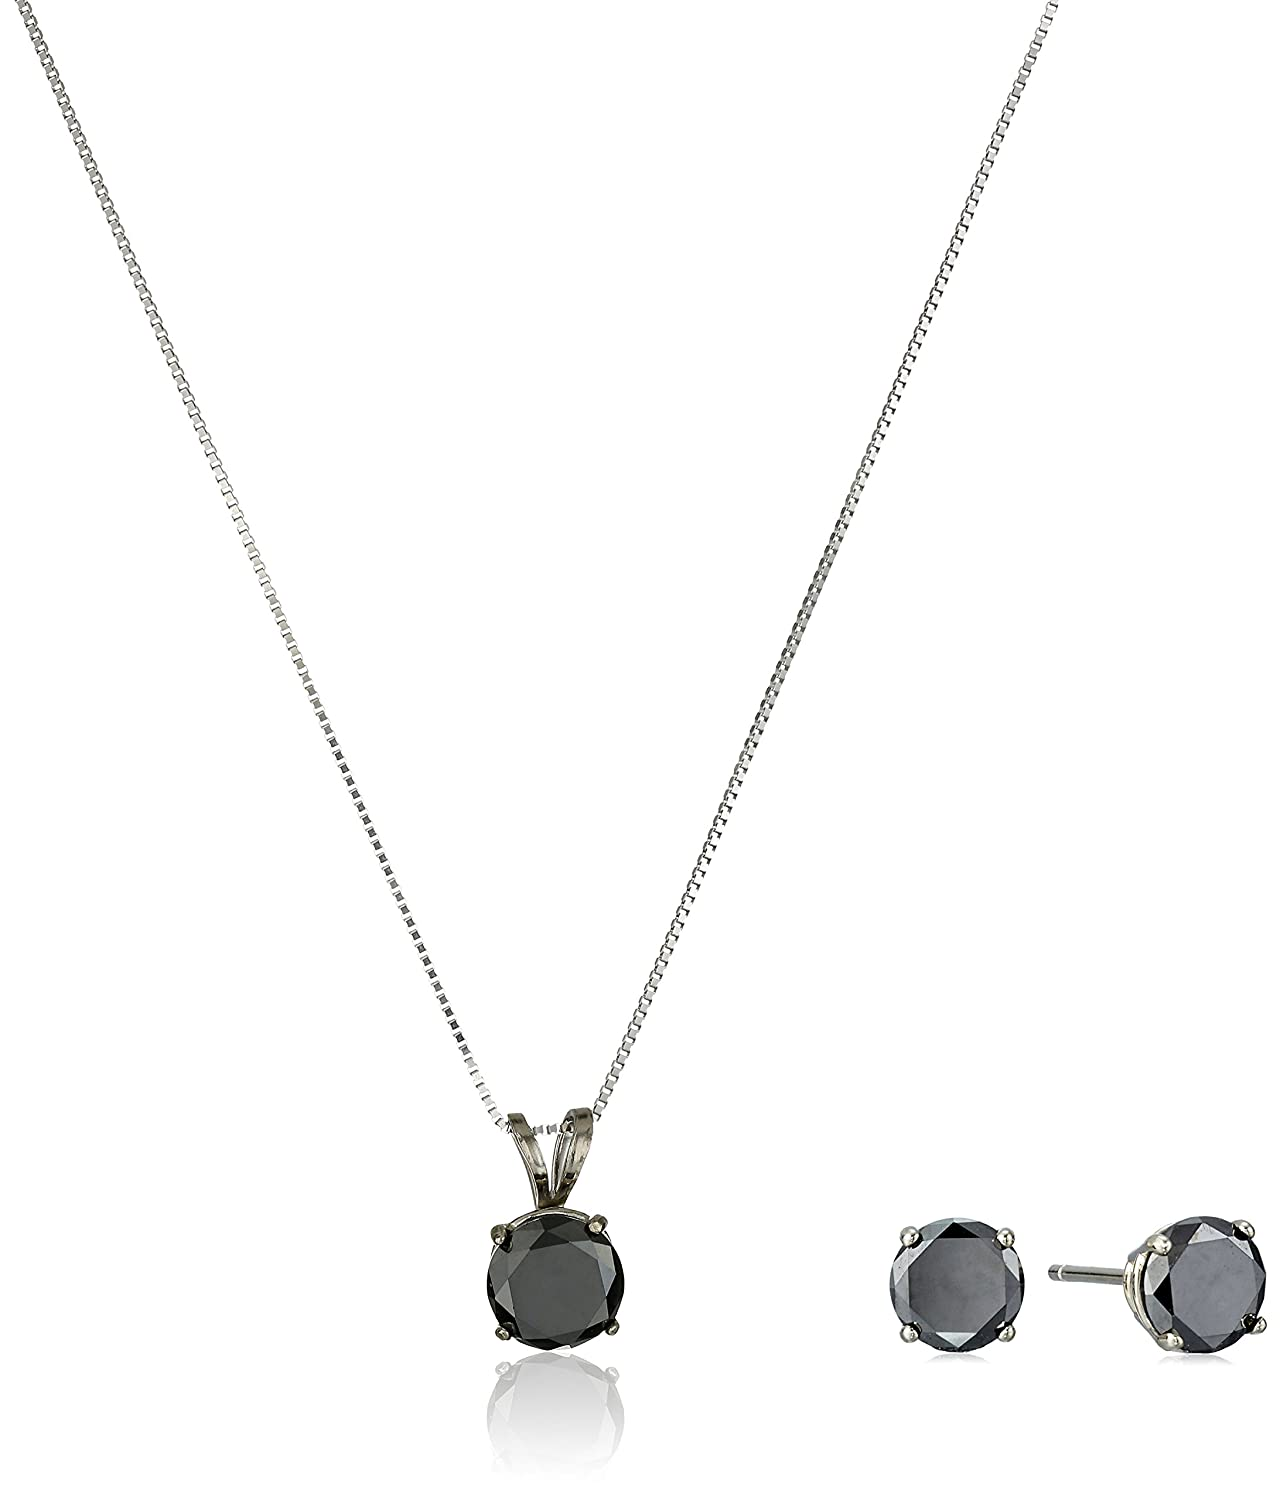 silver chain products inch pendant sterling in ct with necklace black diamond